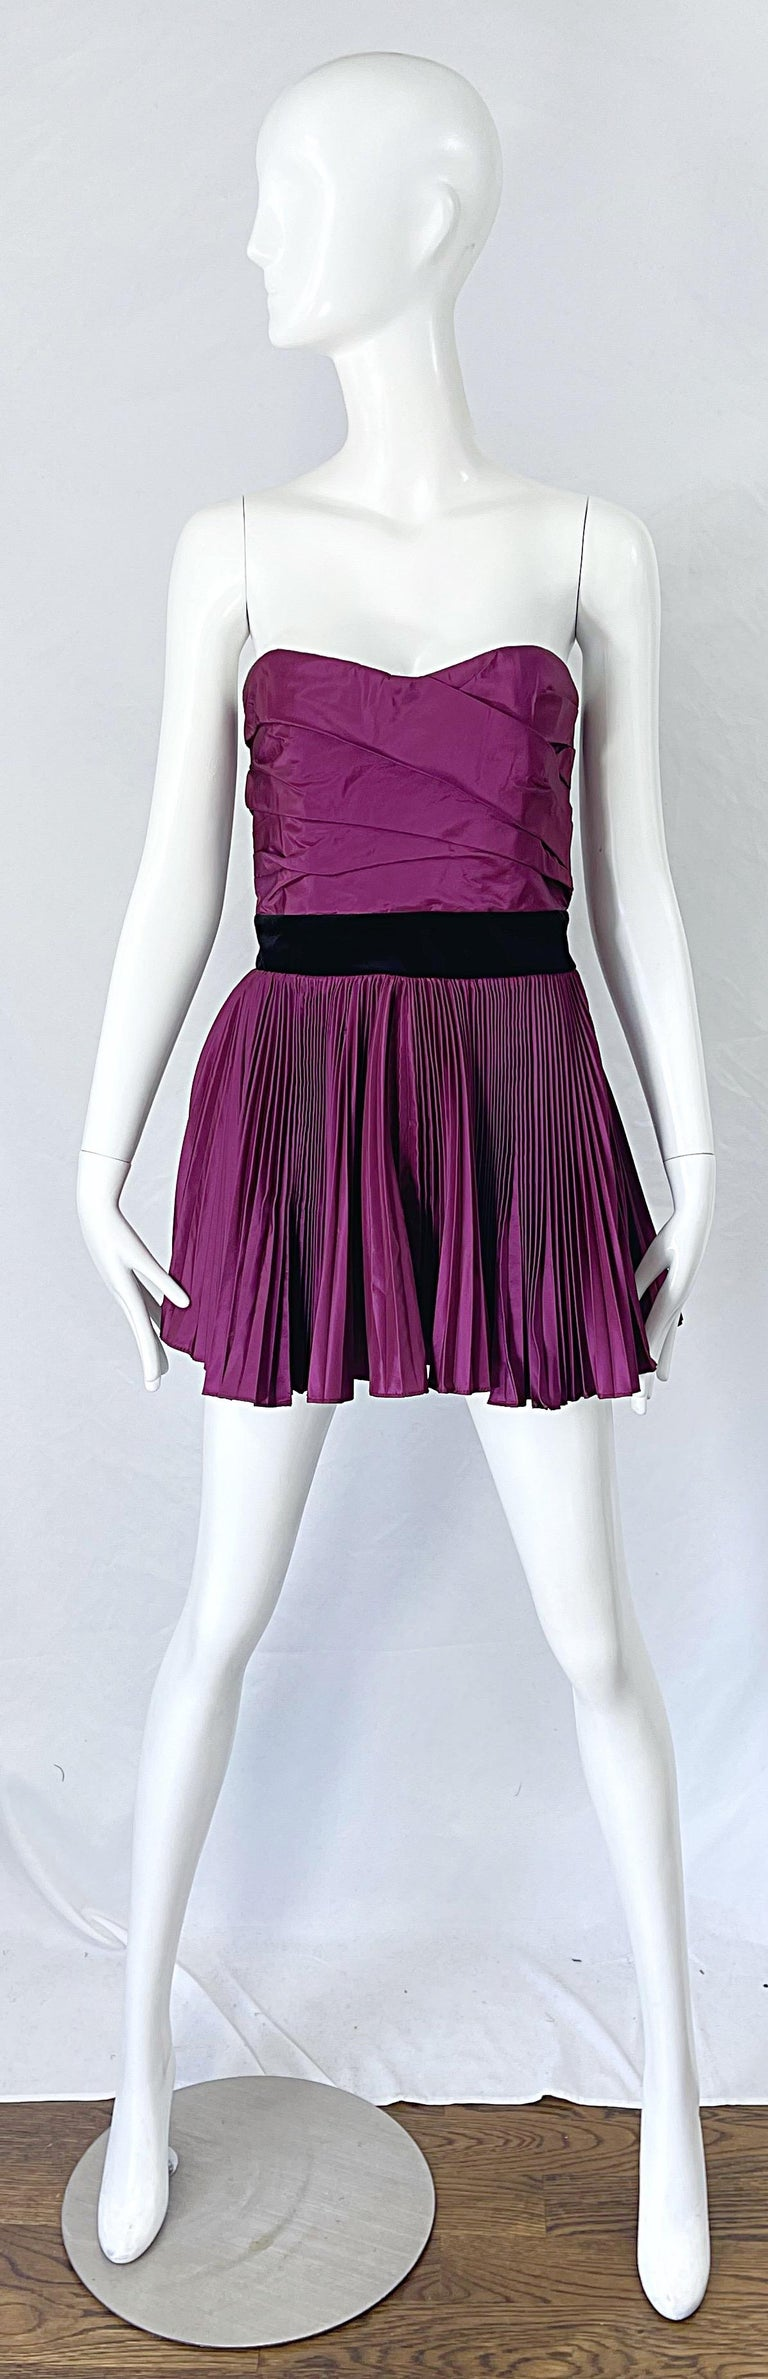 Yves Saint Laurent S/S 2012 Stefano Pilati Purple Silk Taffeta Mini Dress or Top For Sale 11